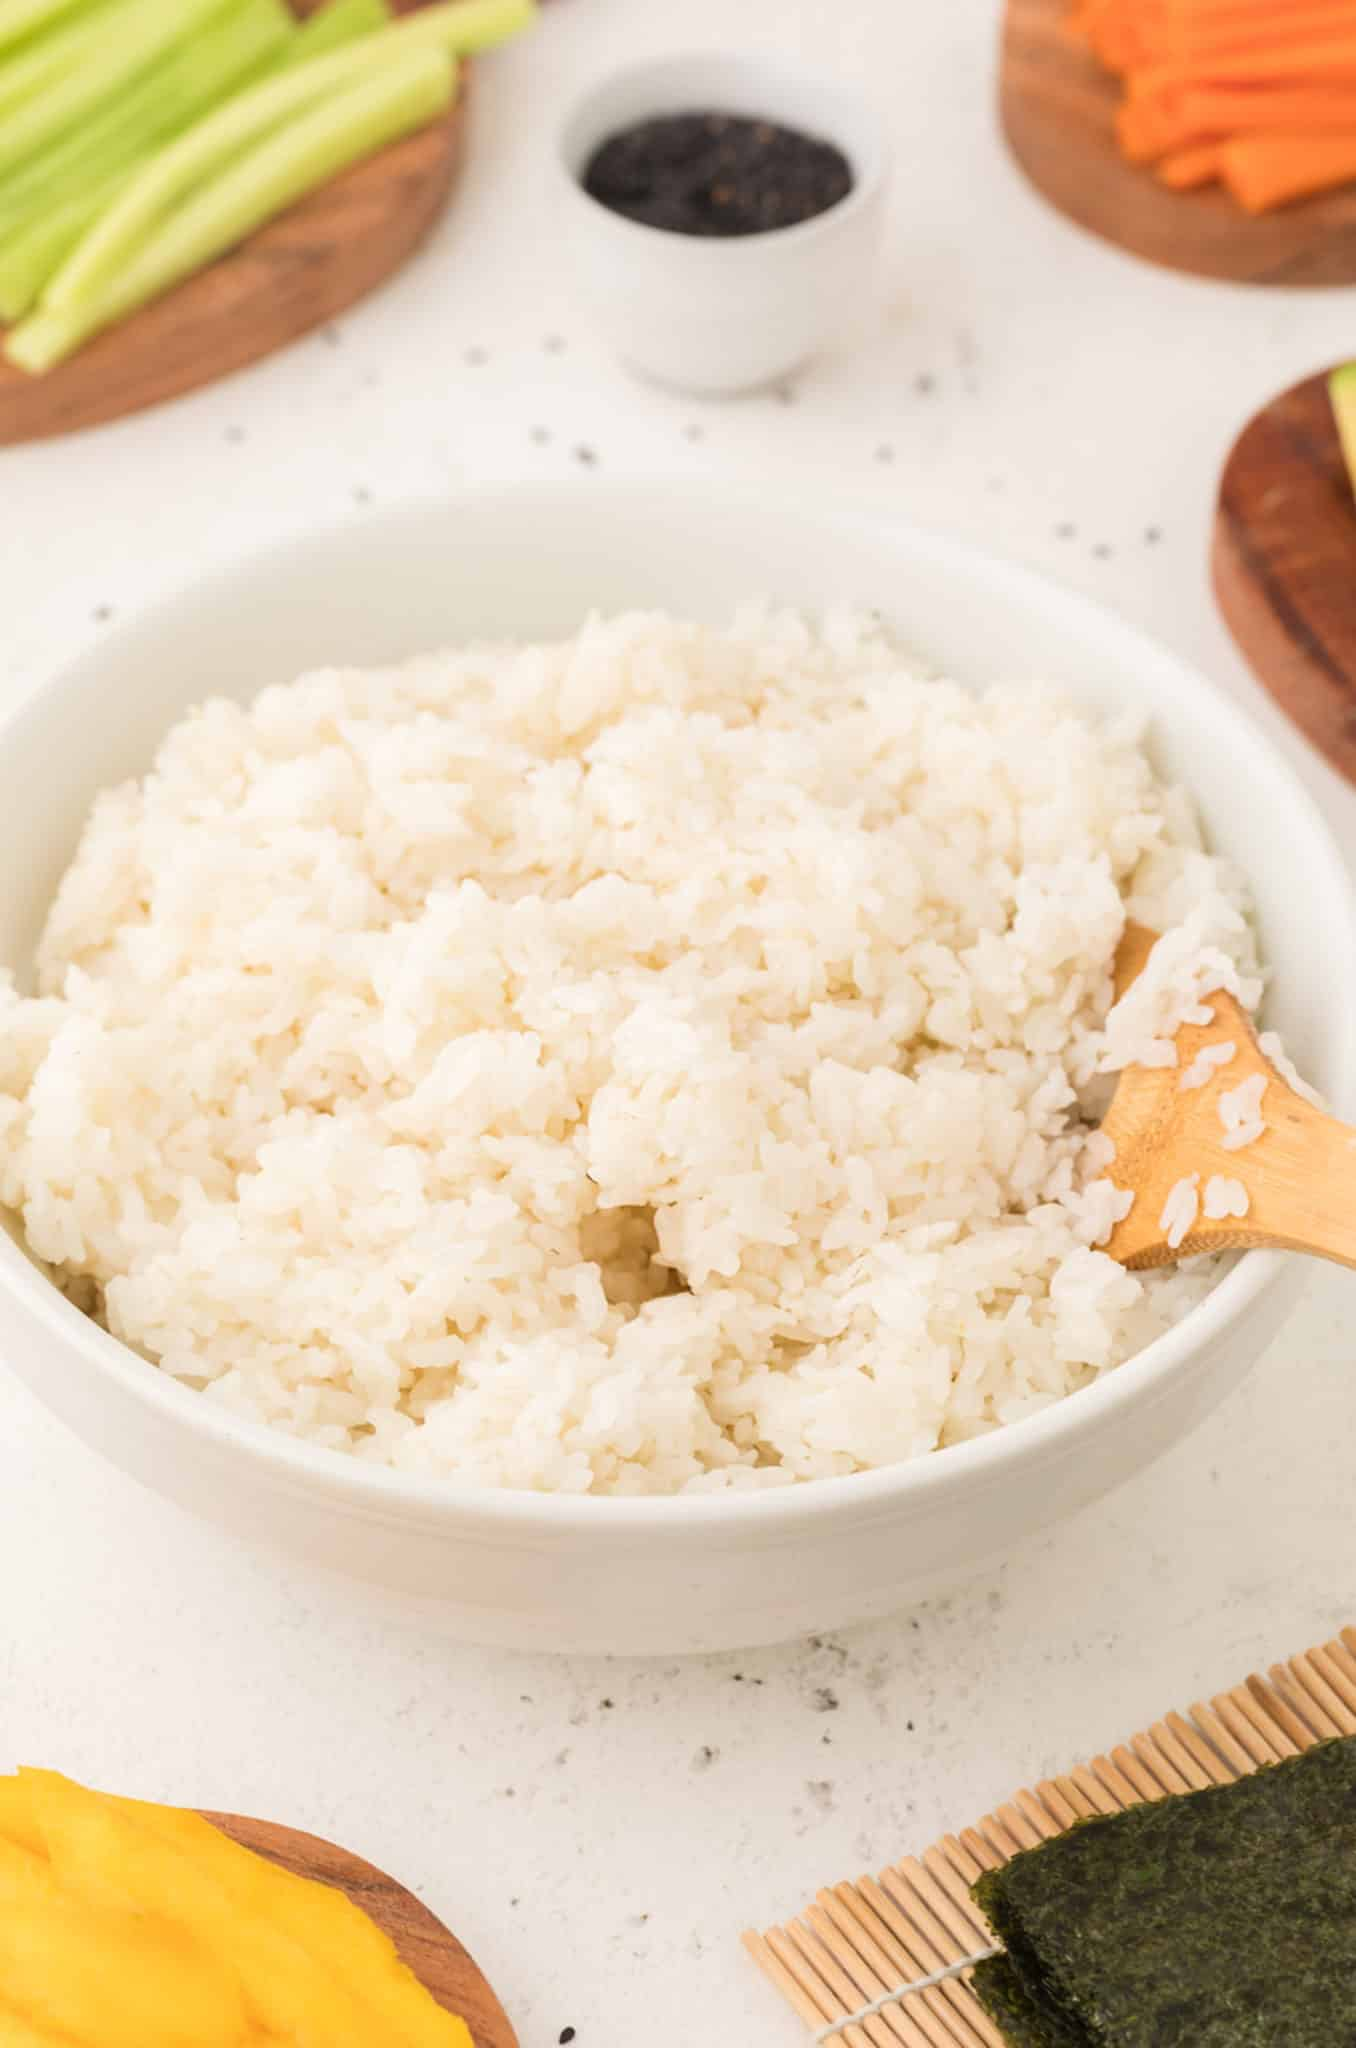 A bowl of cooked sushi rice